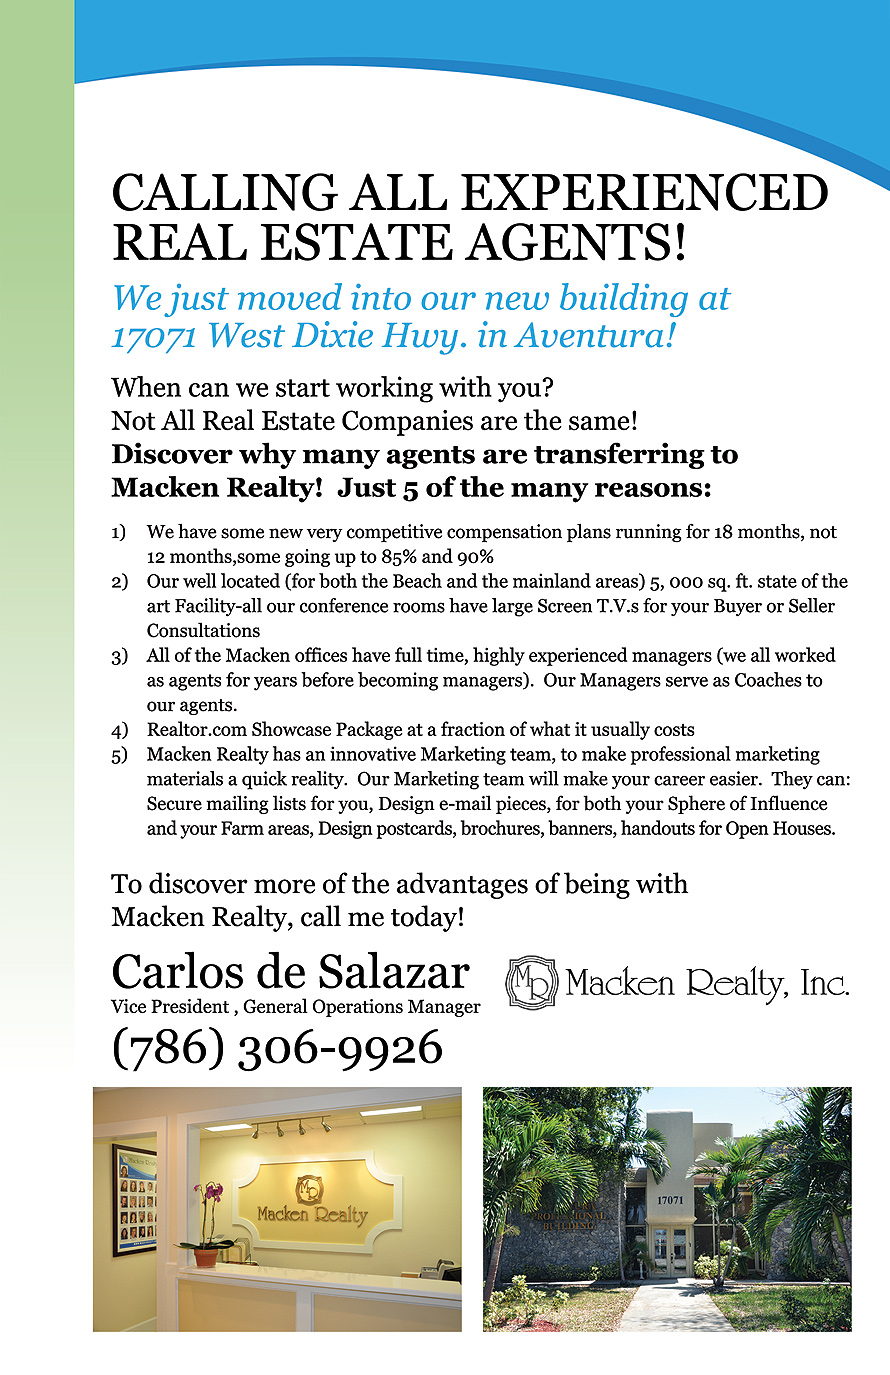 Experienced Real Estate Agents